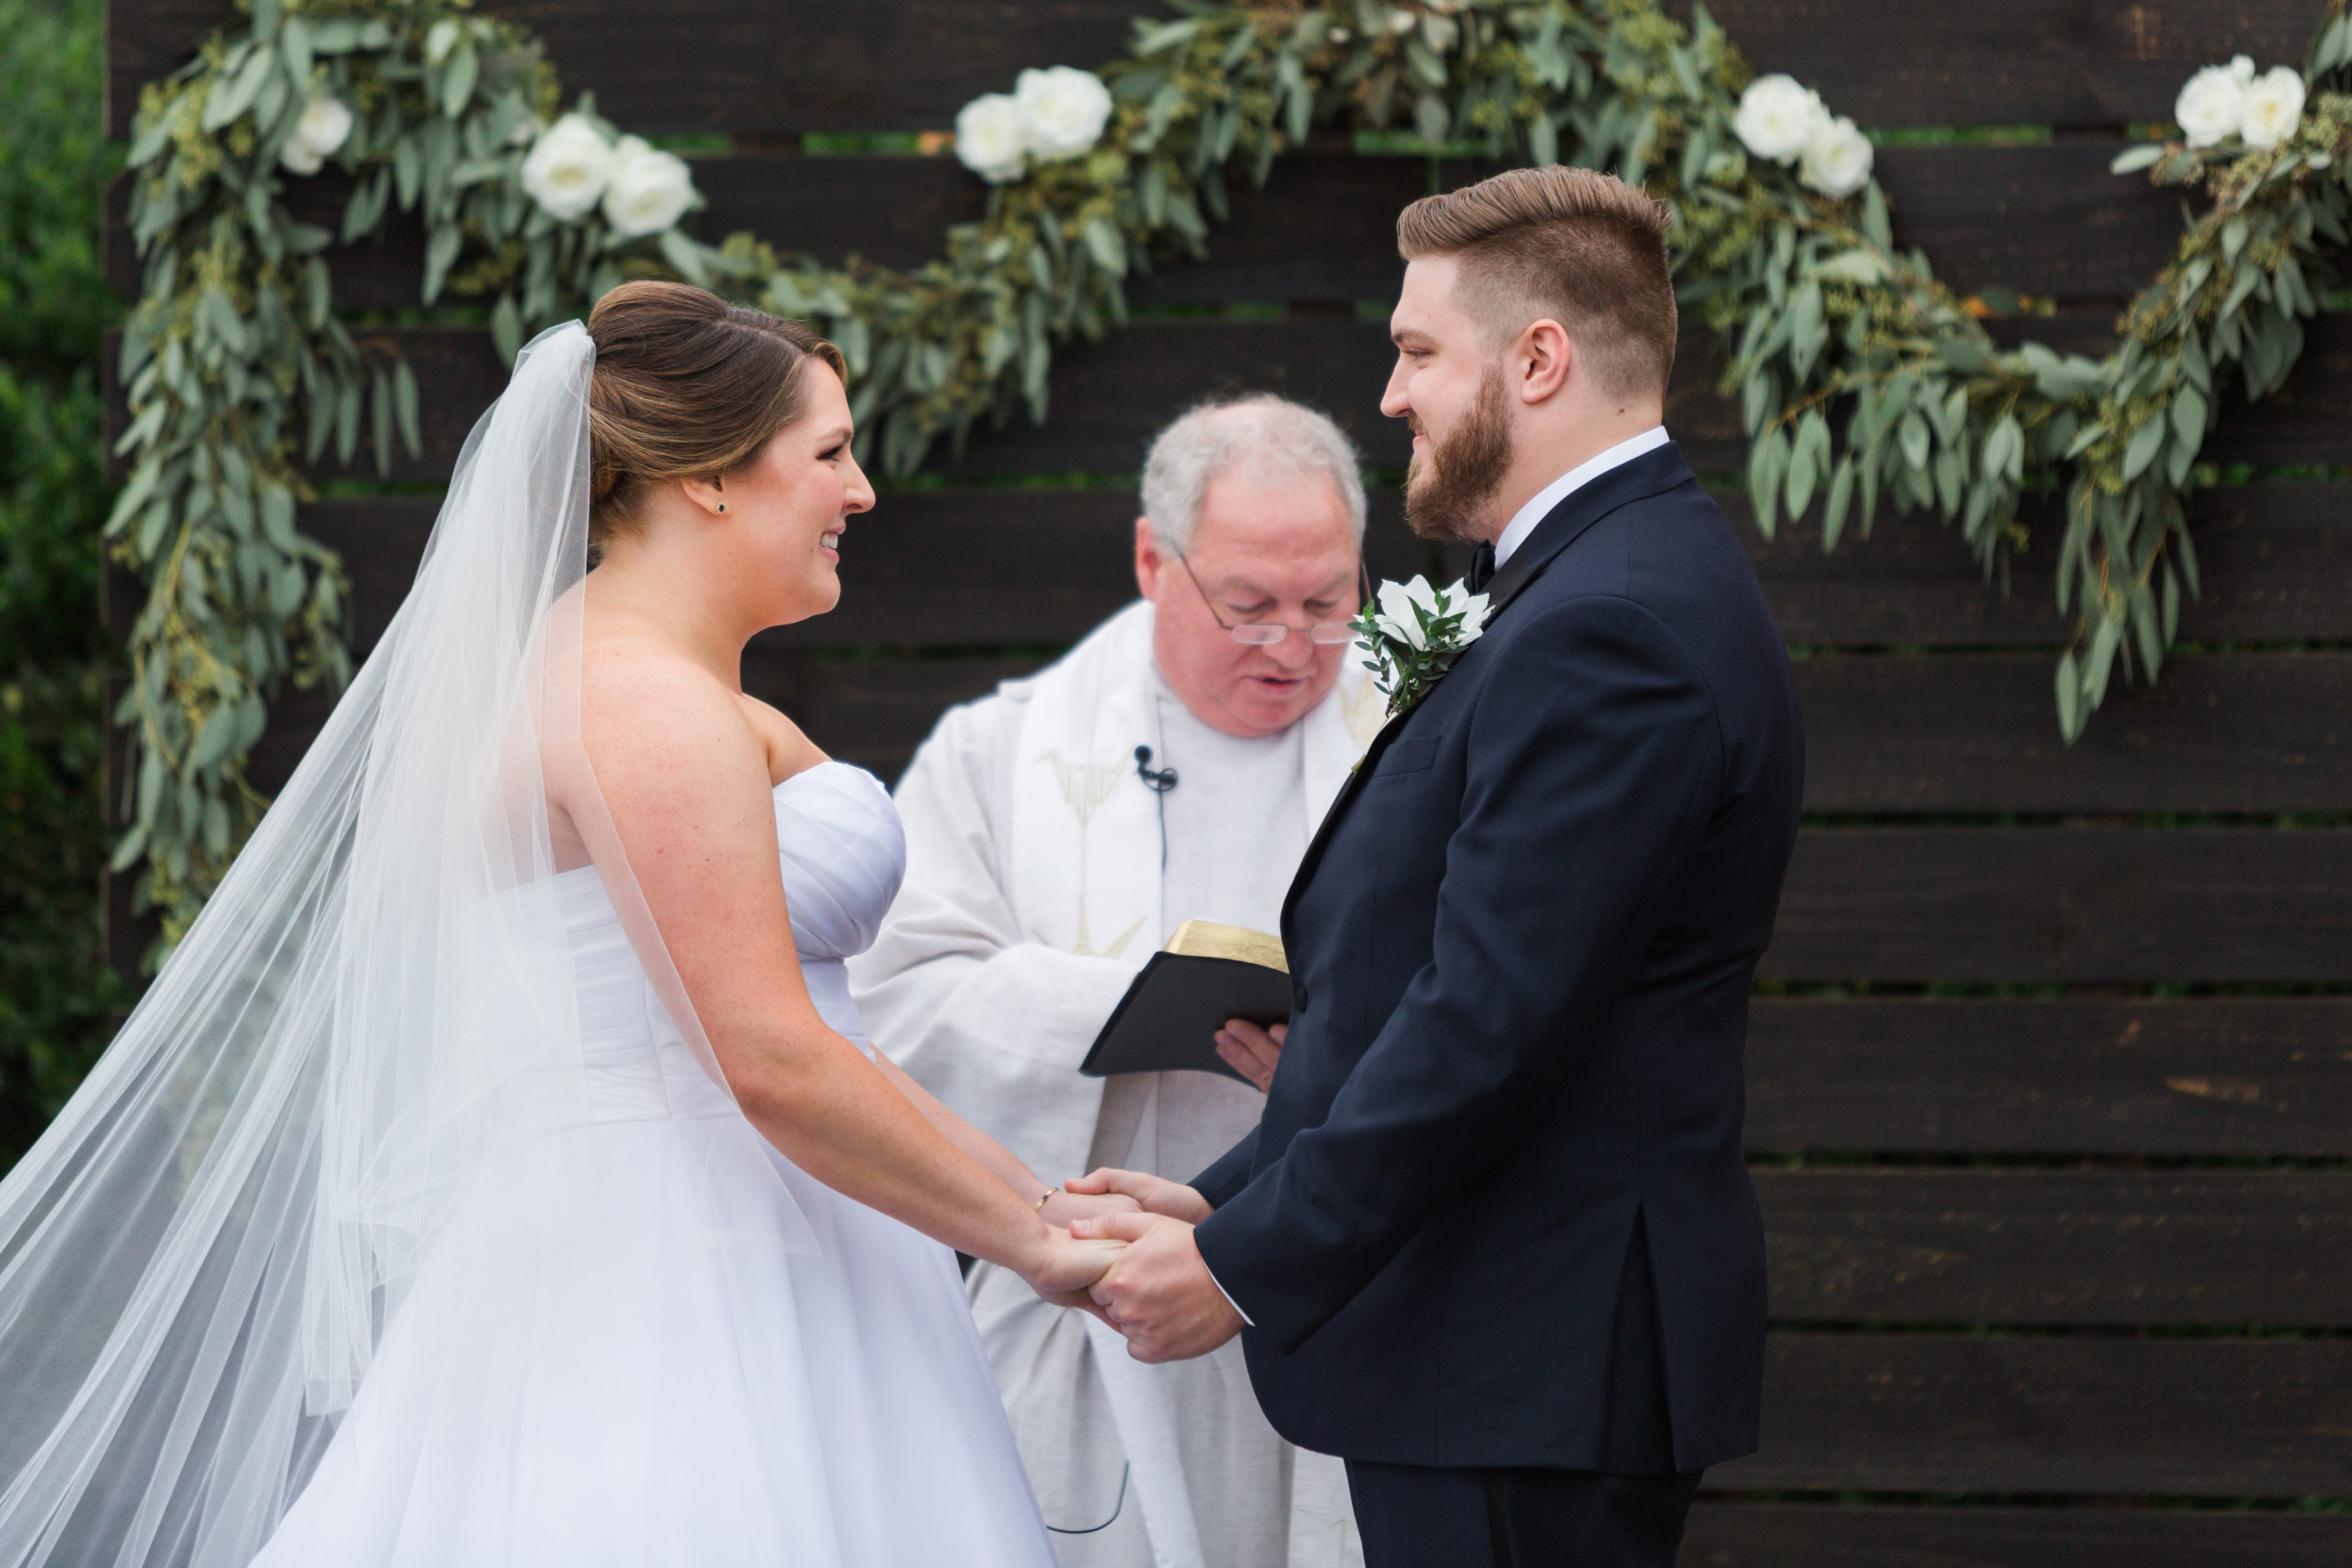 Ceremony vows between bride and groom in front of a wooden palette alter peice with florals designed by Magnificent Moments Weddings